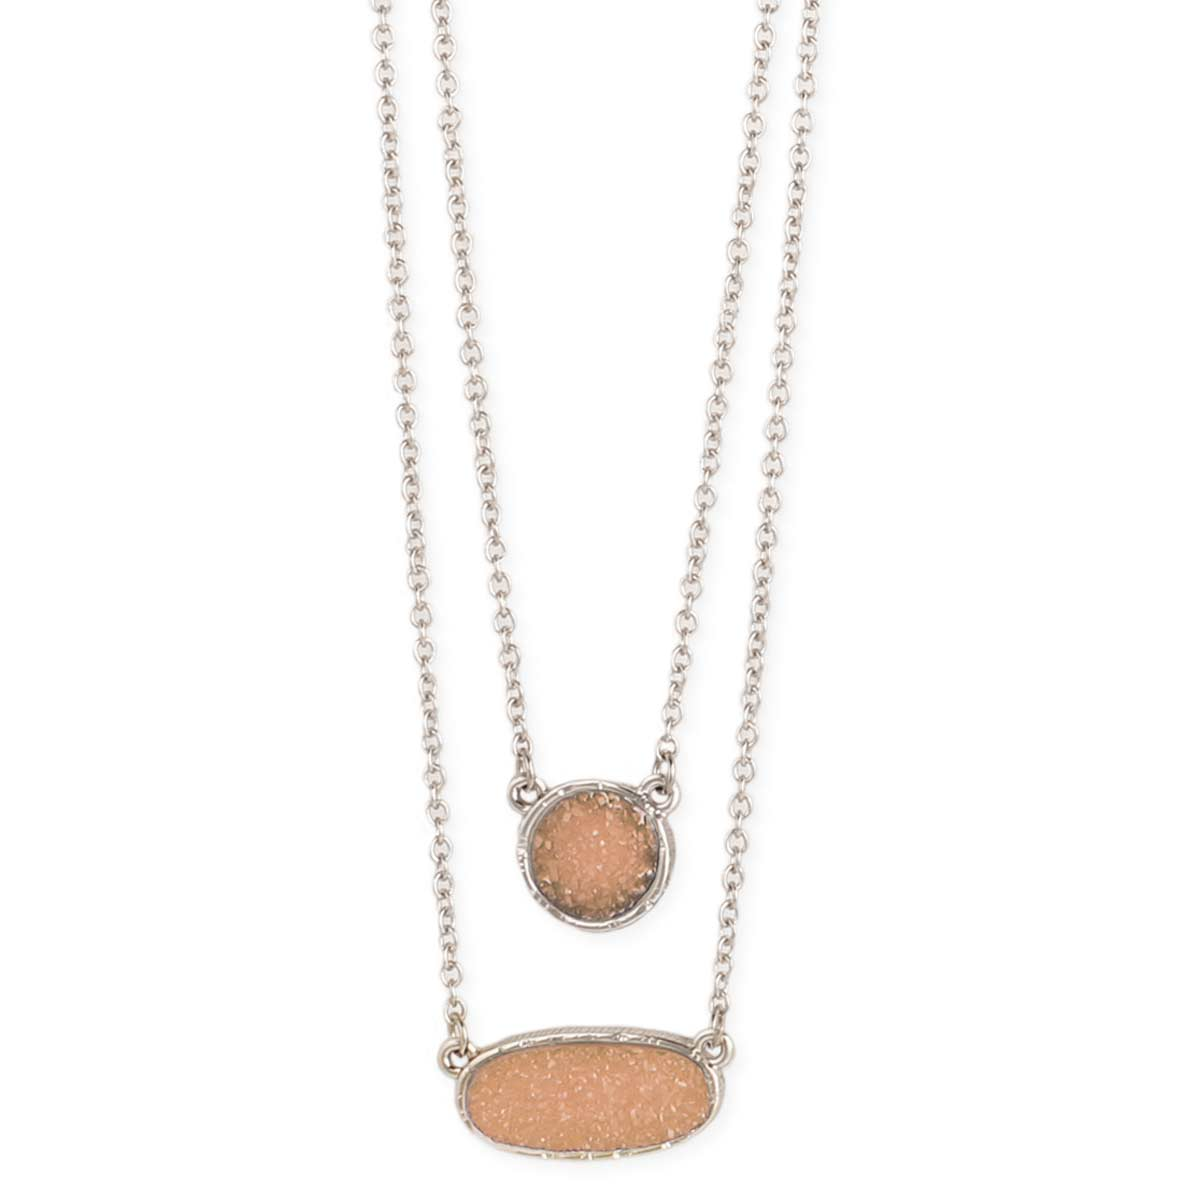 Silver & Peach Druzy Layer Necklace